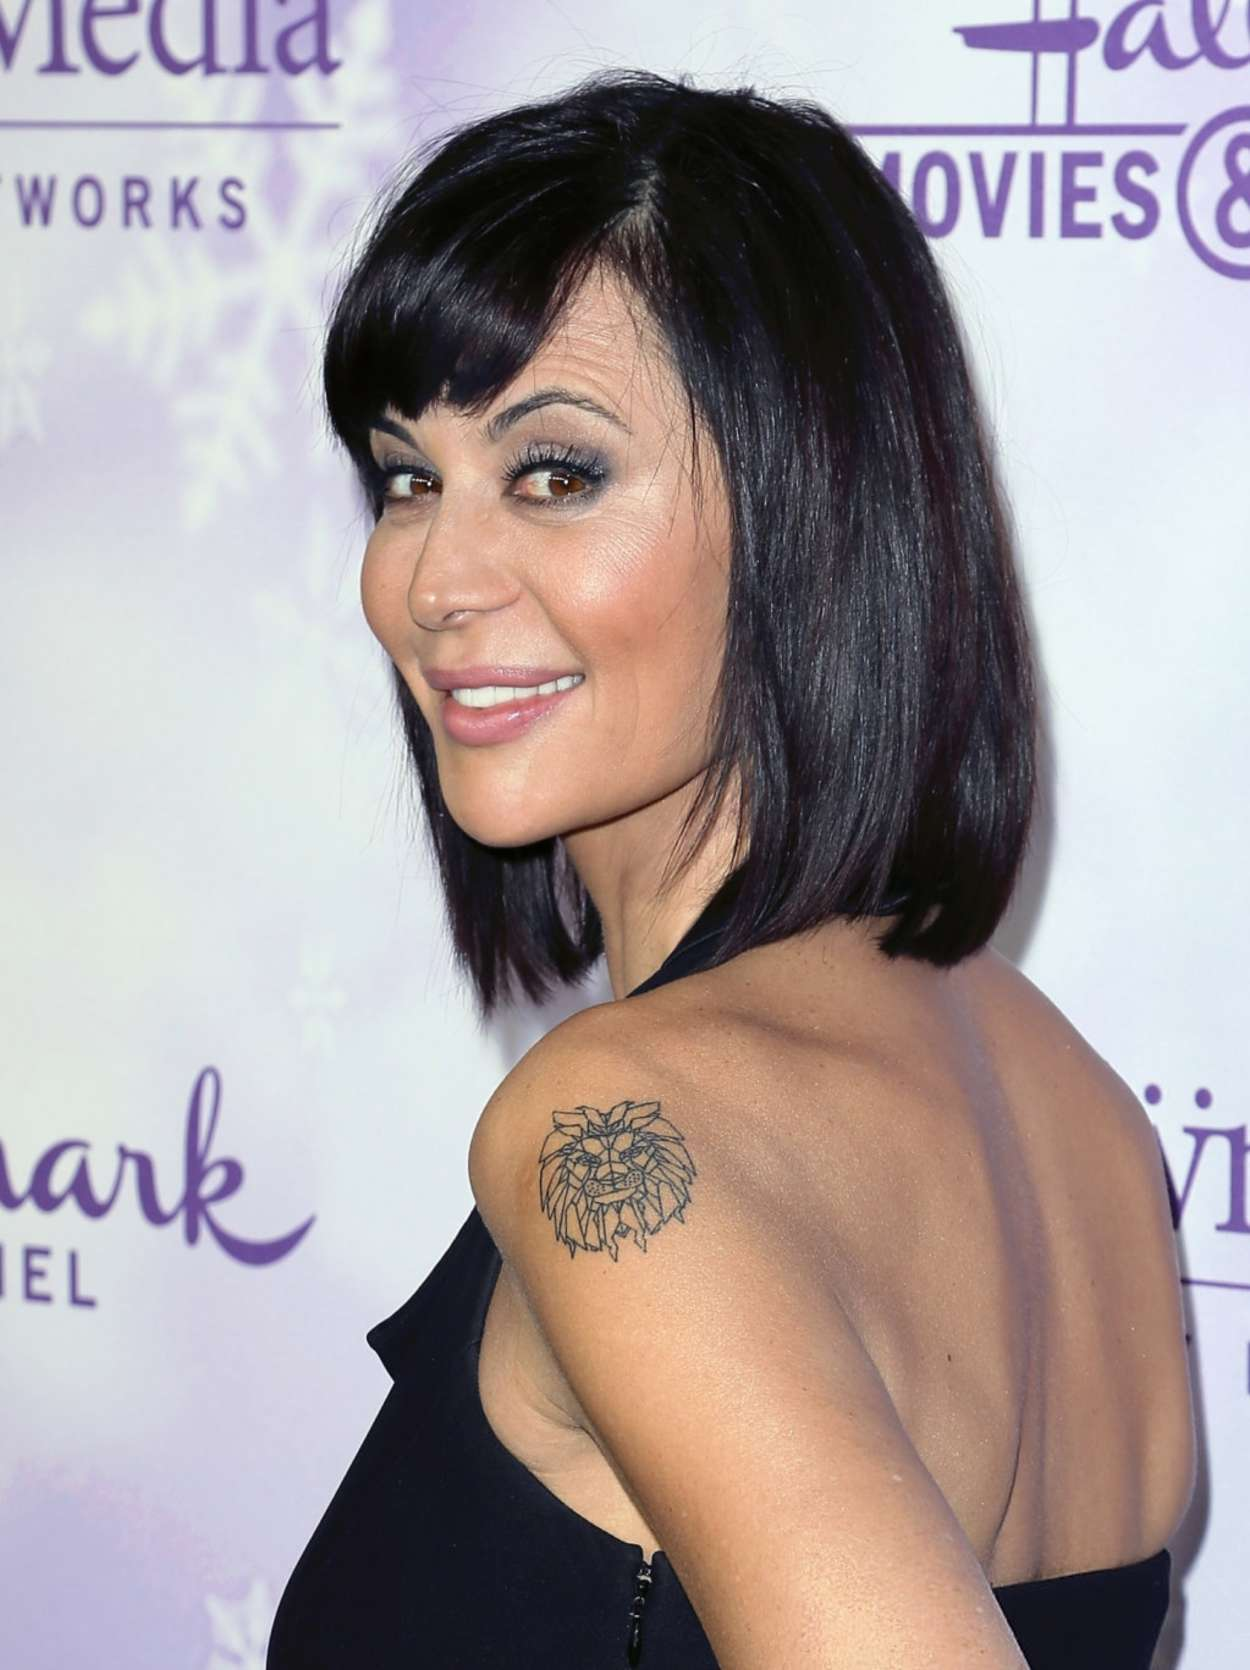 Catherine Bell Hallmark Channel #Winterfest party at the Winter TCA Tour in California